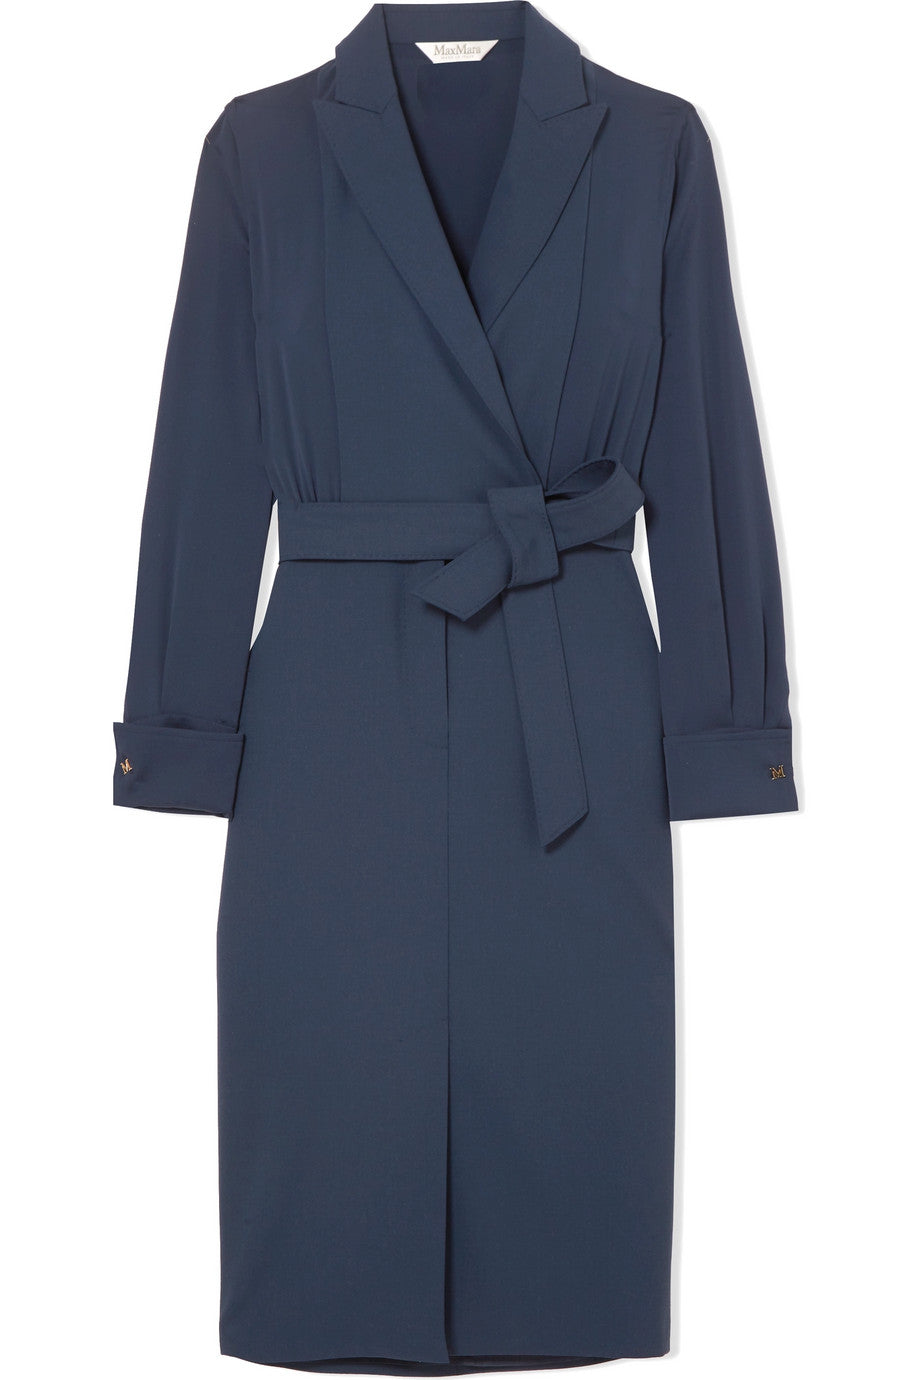 Max Mara - Navy blue wool and silk wrap dress featured in Capsule Wardrobe on ownmuse.com